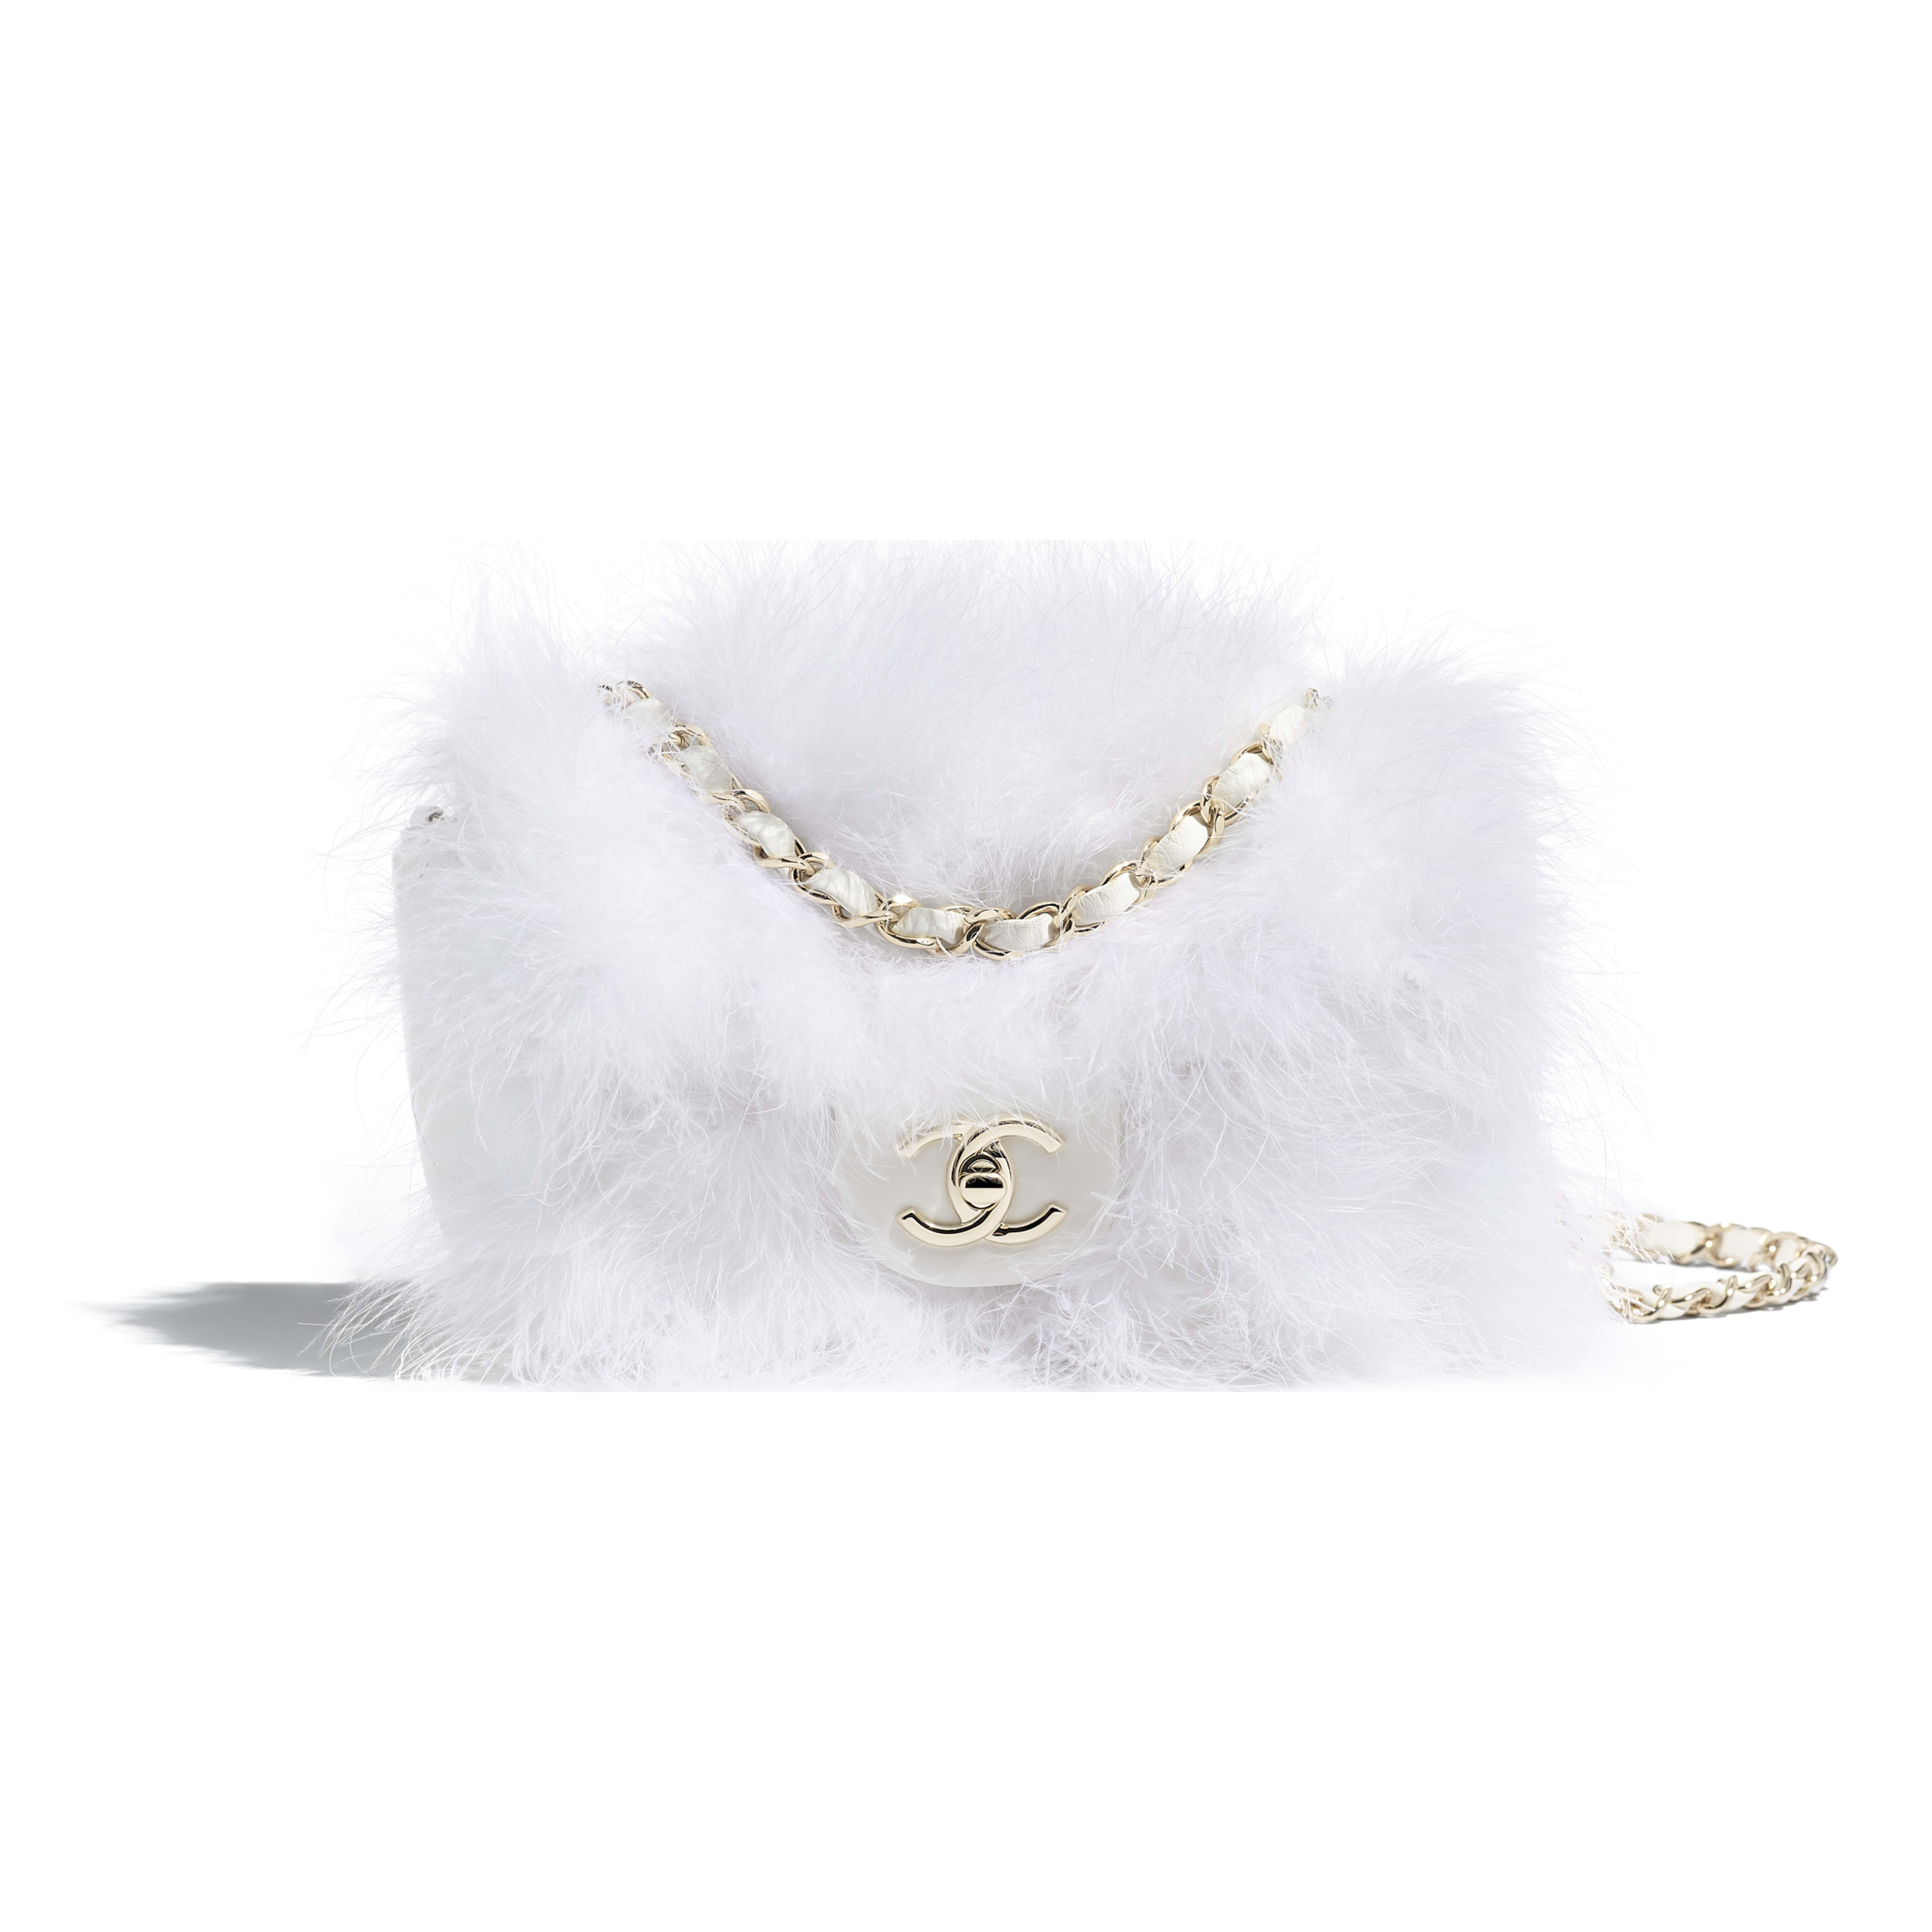 Flap Bag - White - Feathers, Lambskin & Gold-Tone Metal - Default view - see full sized version